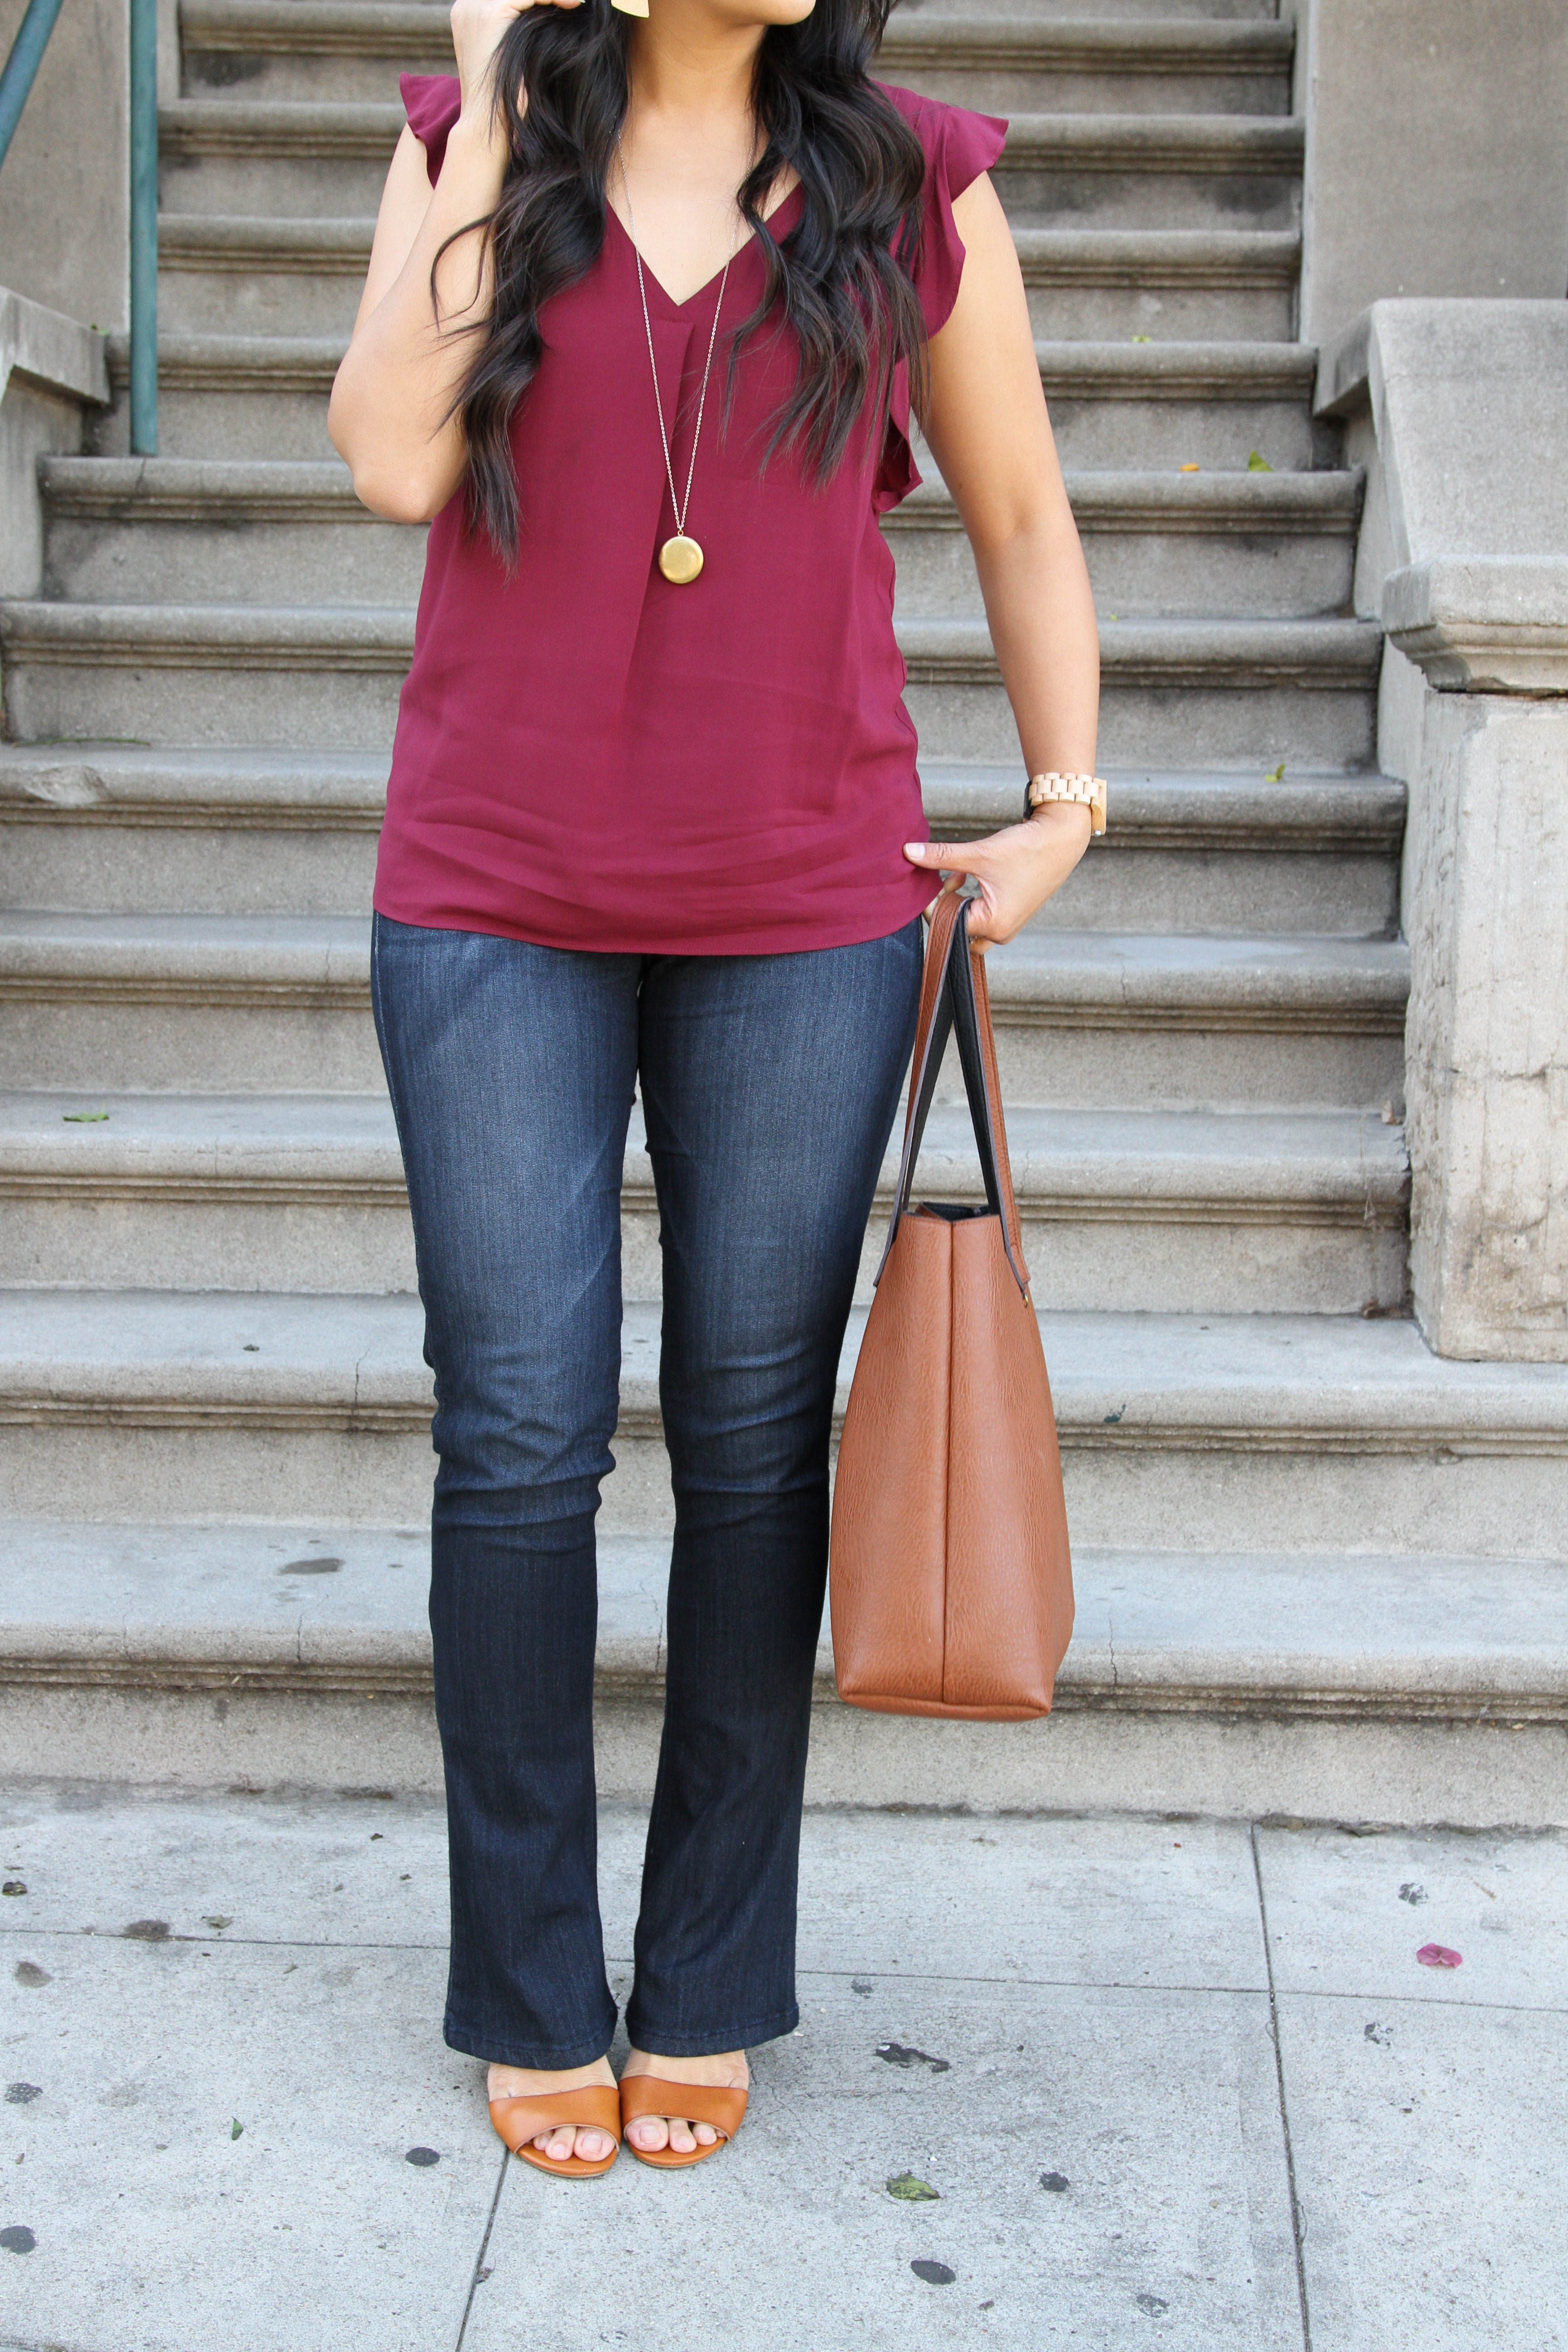 Bootcut jeans + maroon top + cognac bag + cognac shoes